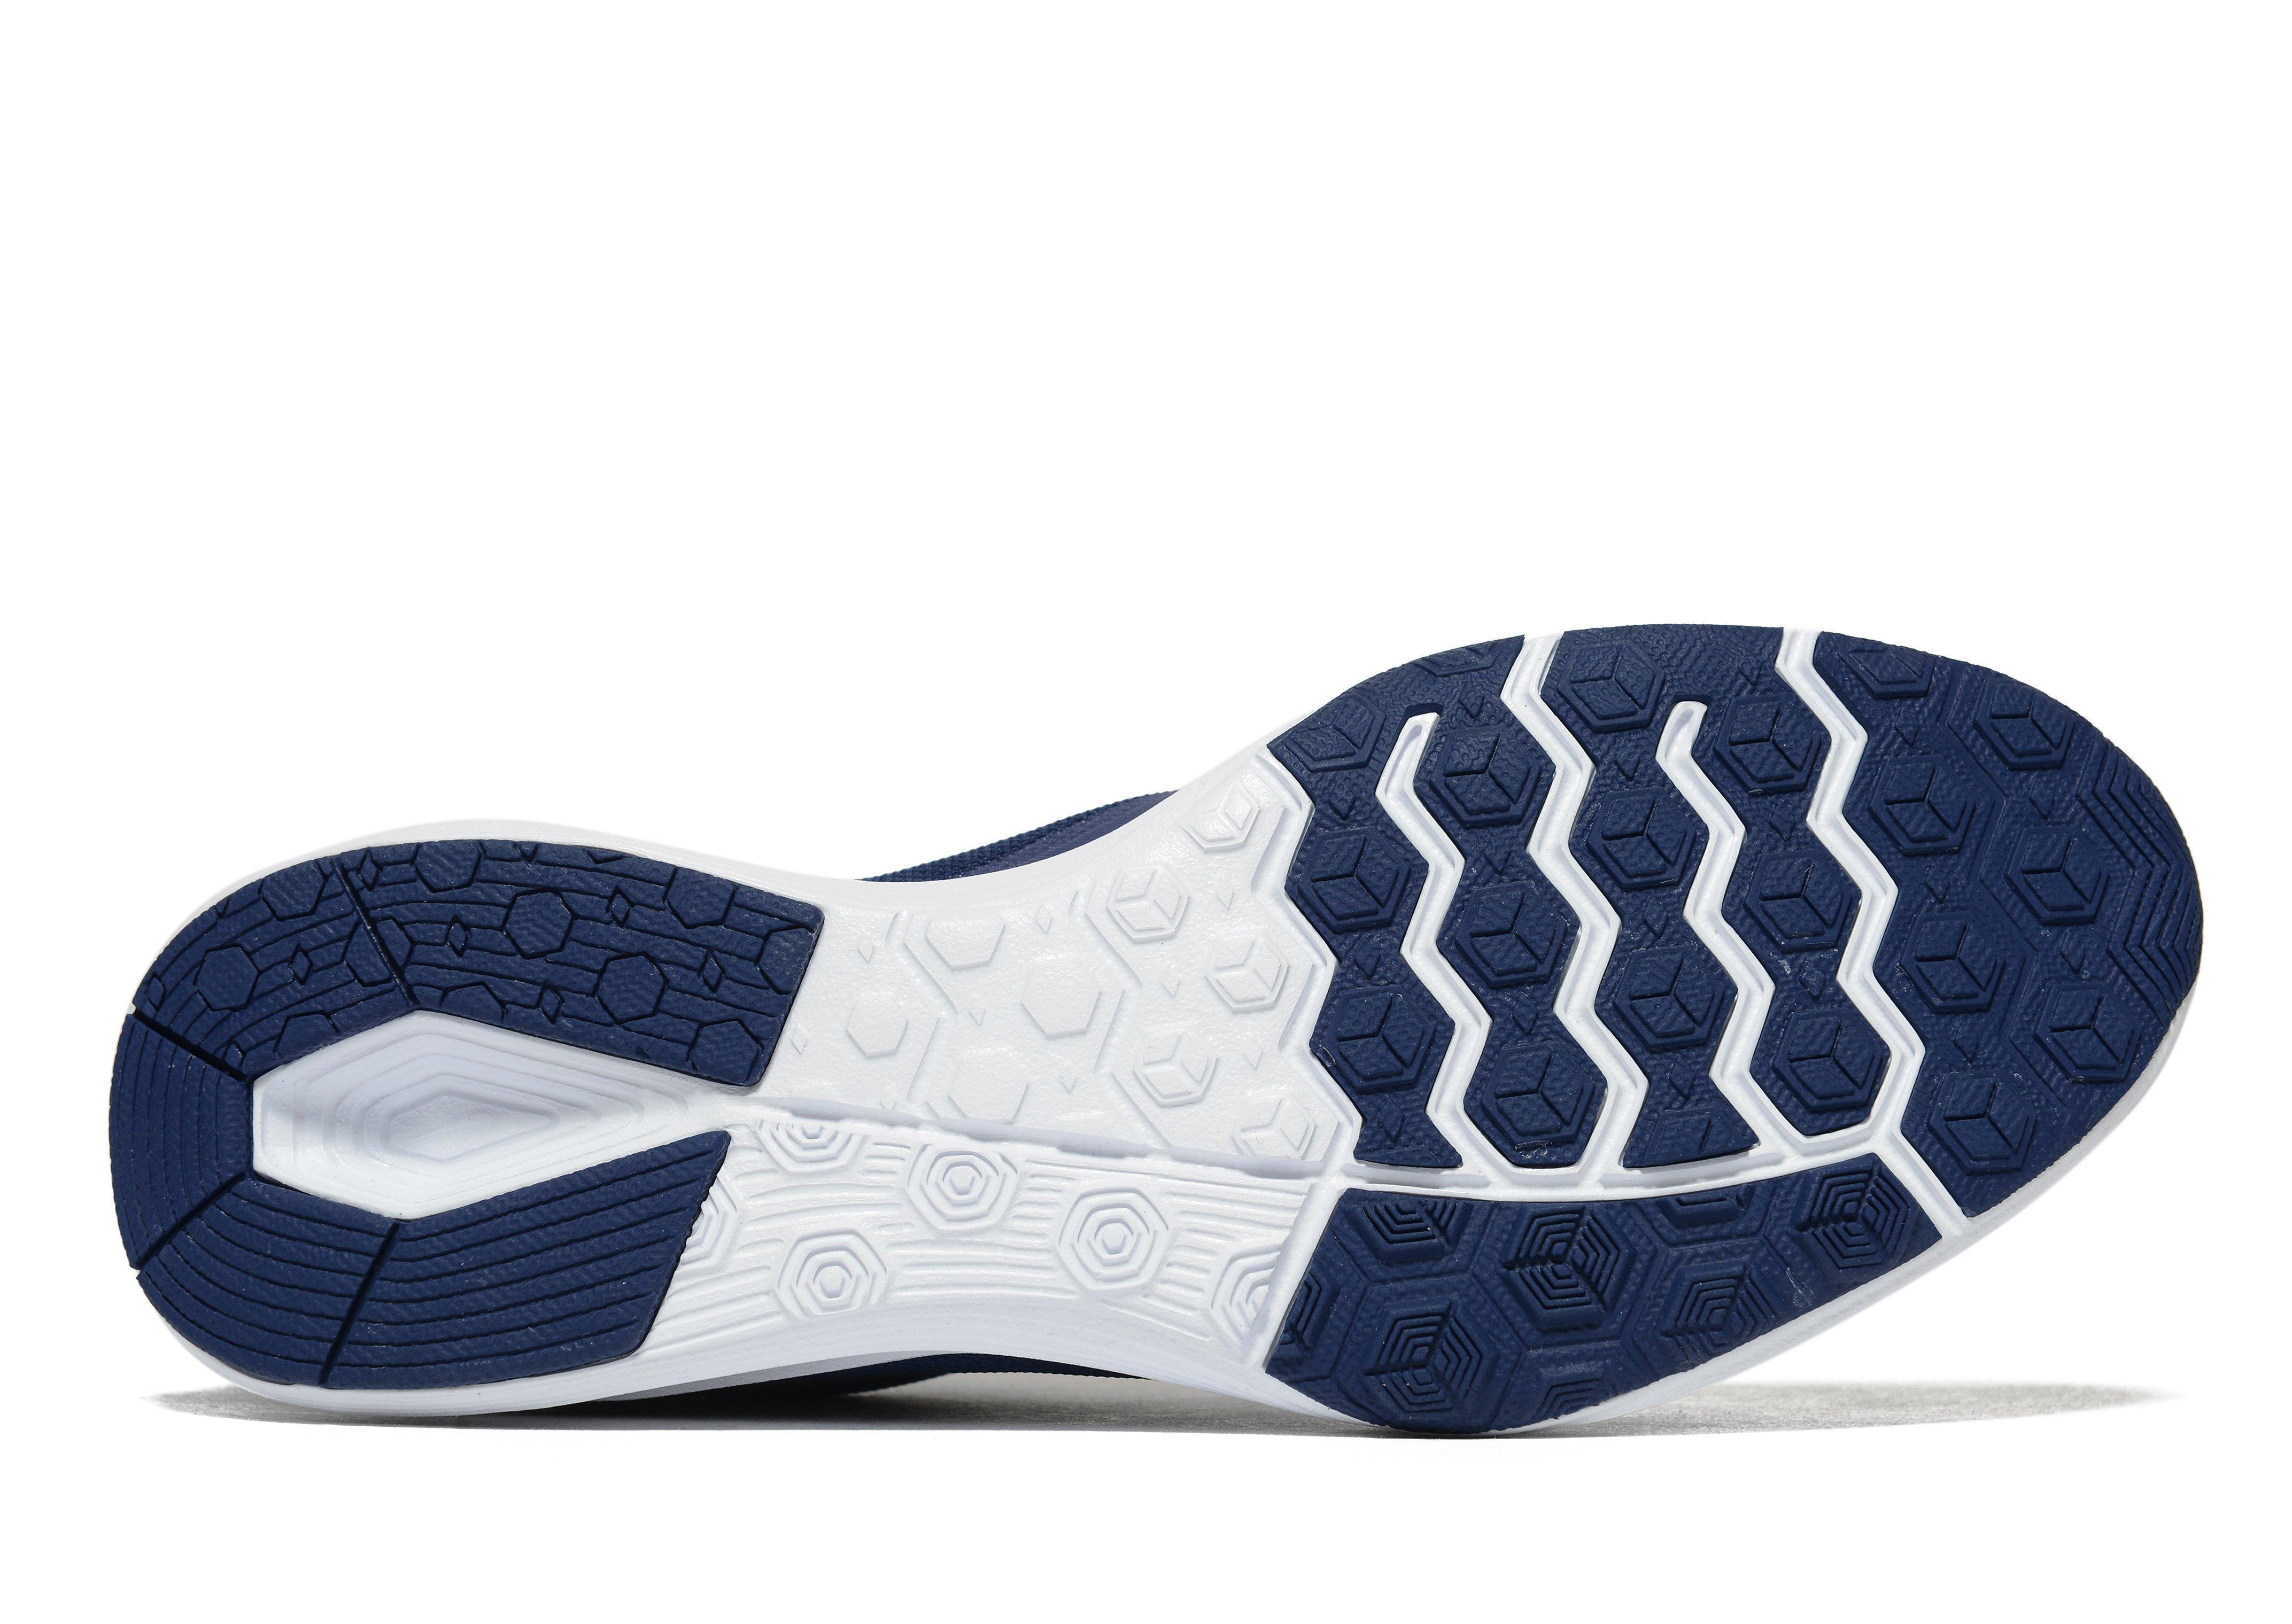 Nike Synthetic City Trainer in Navy (Blue)